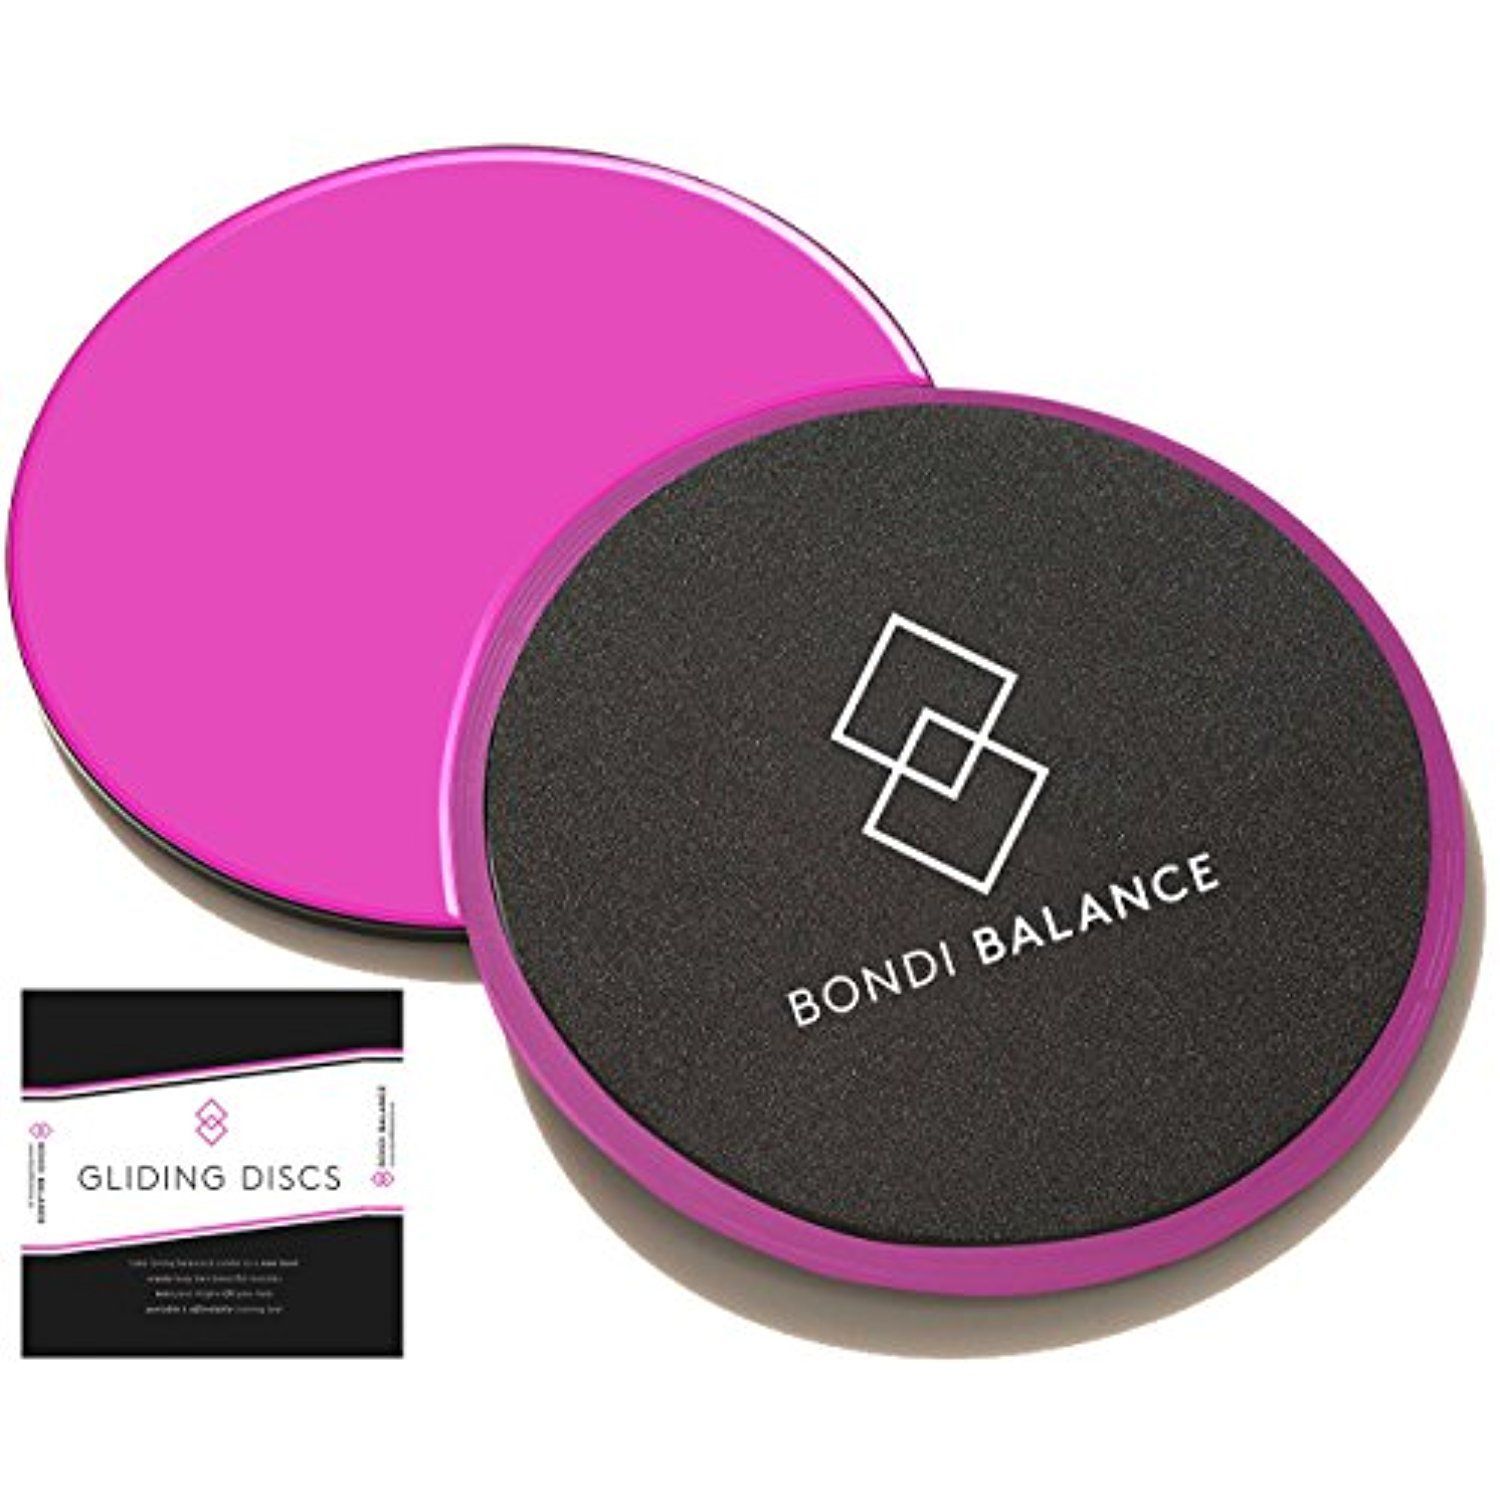 Bondi Balance Gliding Discs Hot Pink Dual Sided Core Sliders For